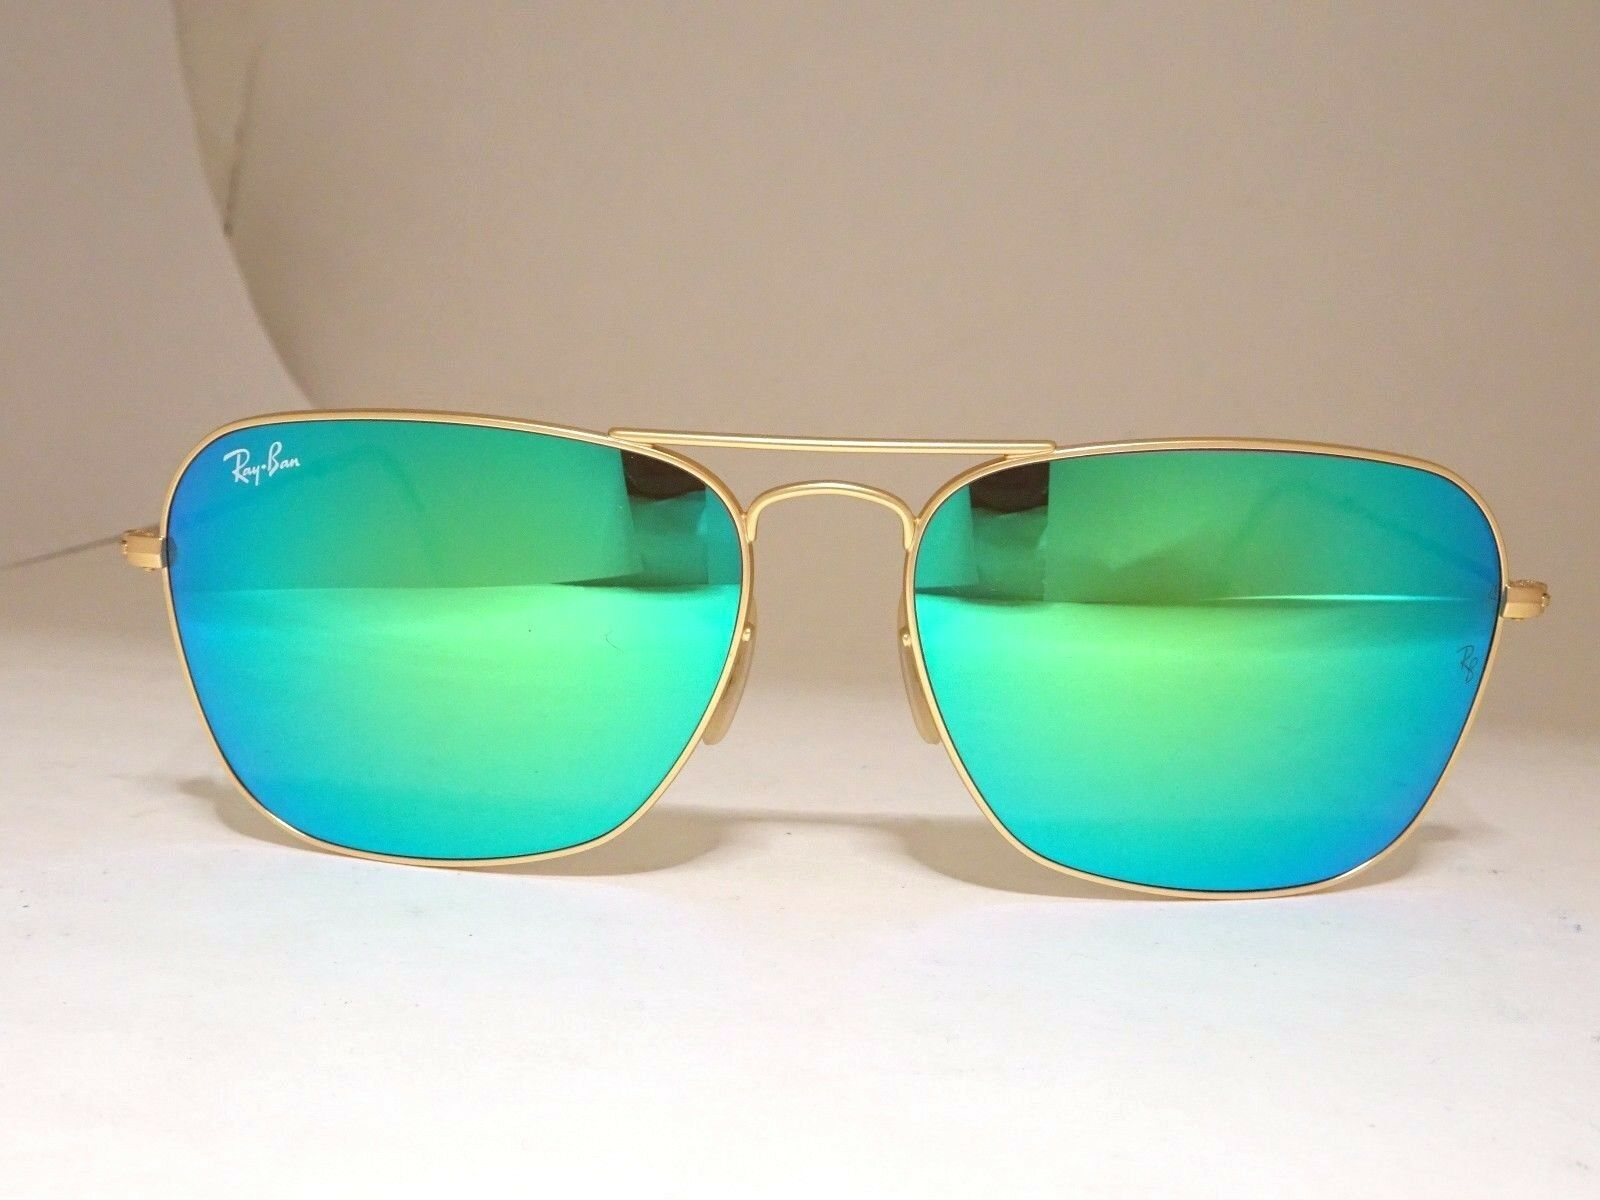 f5ccc8f8d2 EAN 8053672559132 product image for Ray-ban Sunglasses Caravan Green  Mirrored   Gold Metallic Frame EAN 8053672559132 product image for Ray Ban  3136 112 19 ...